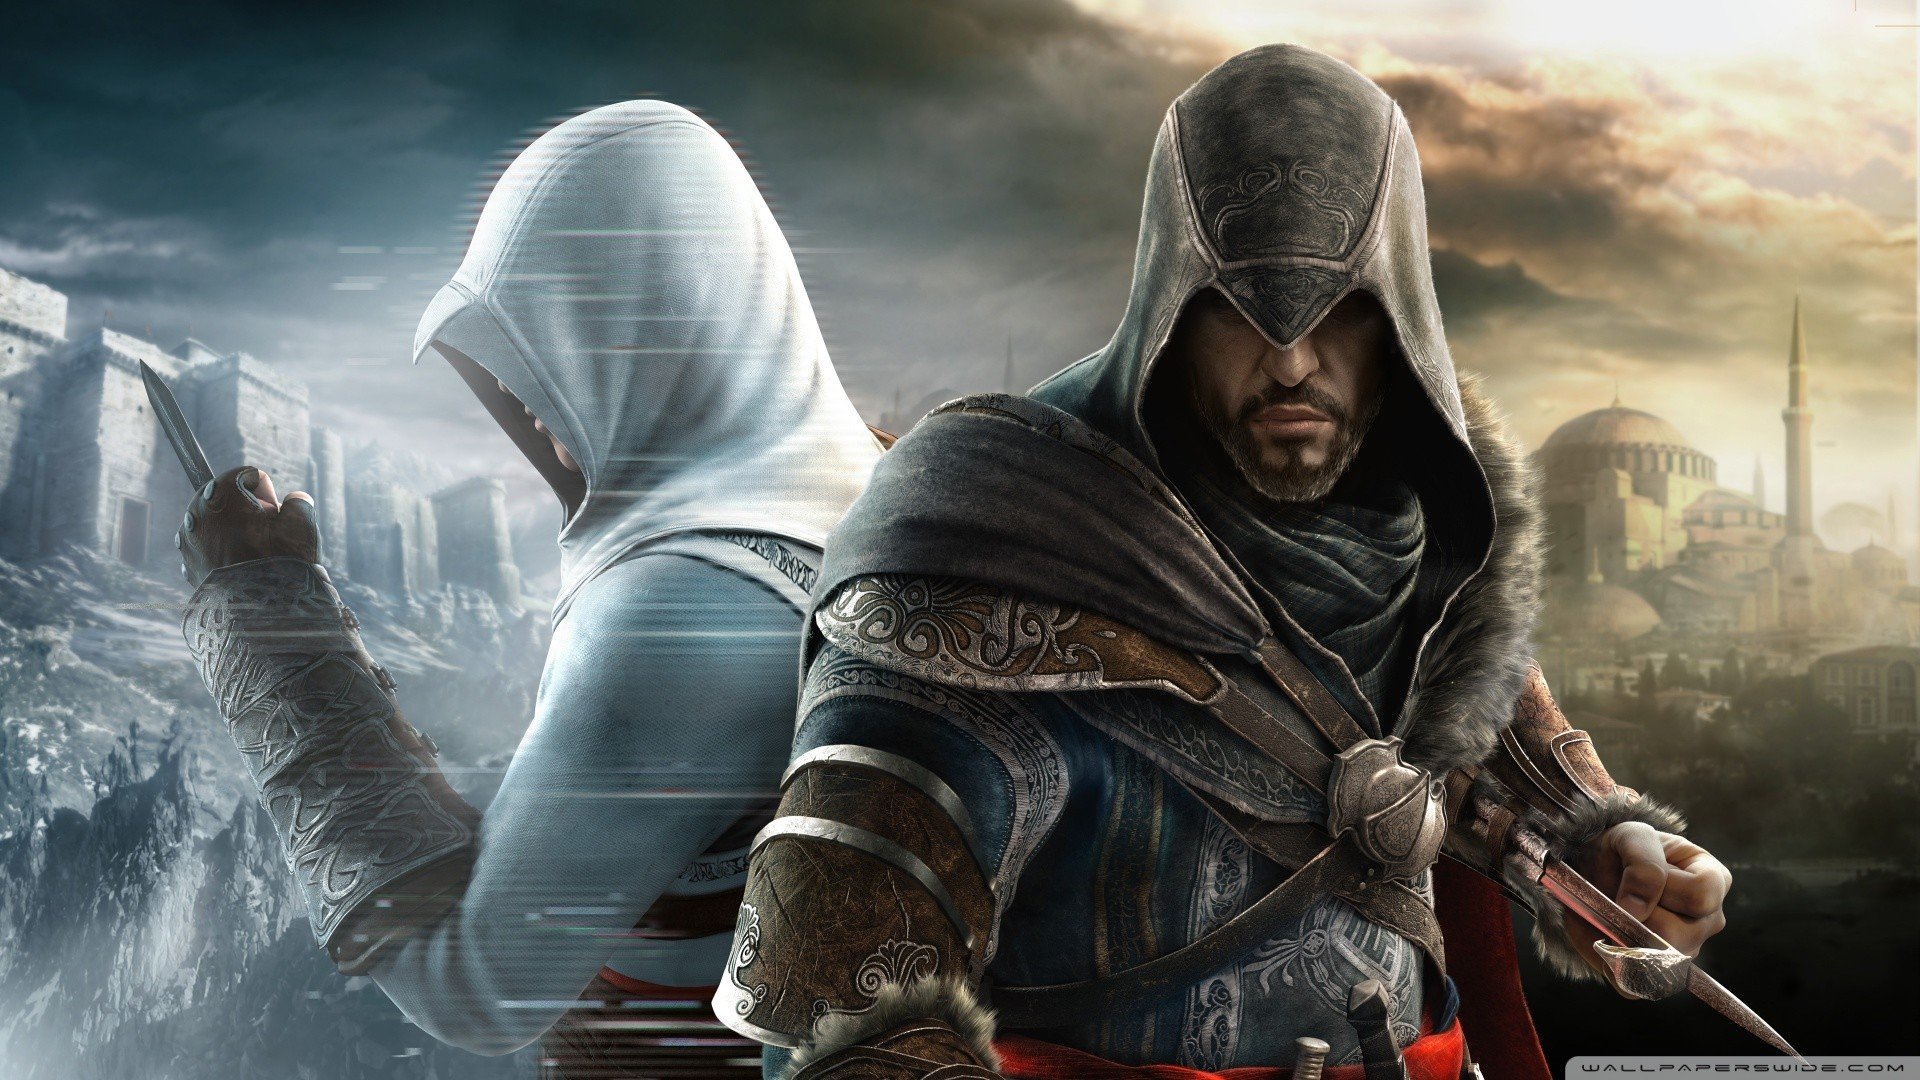 Assassins Creed Revelations Wallpaper Hd 92 Images